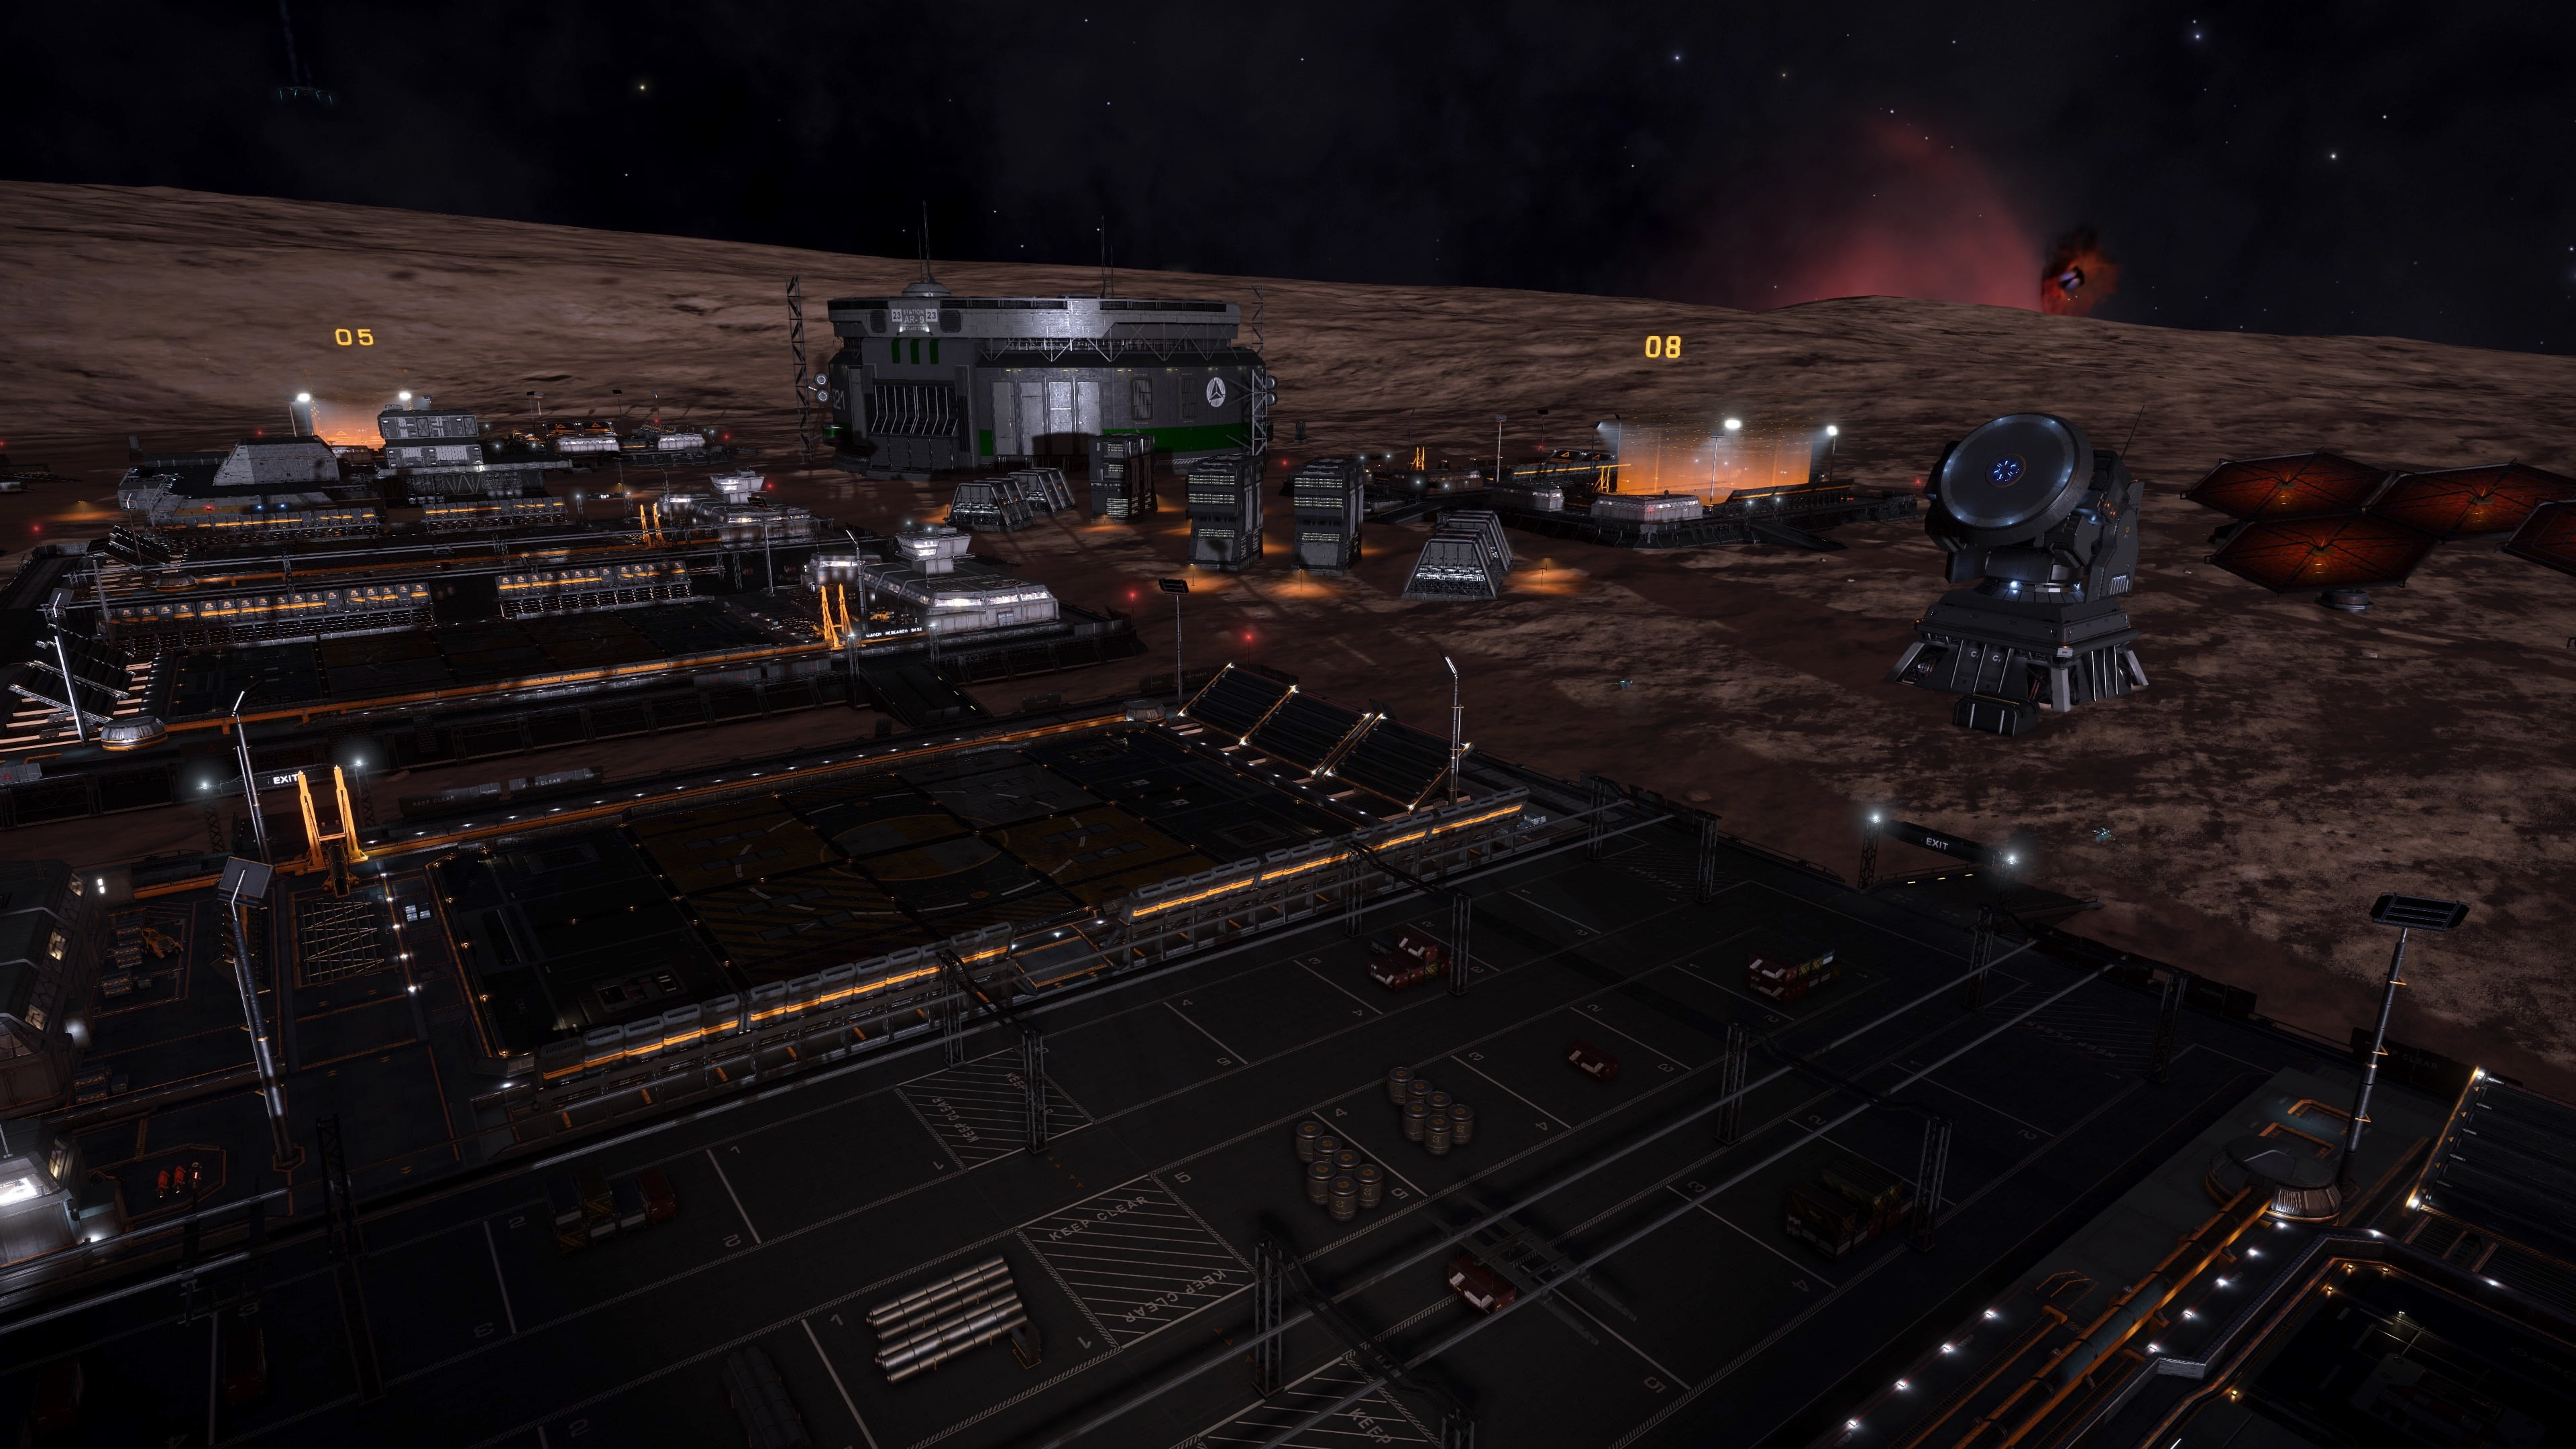 Mahon Research Base